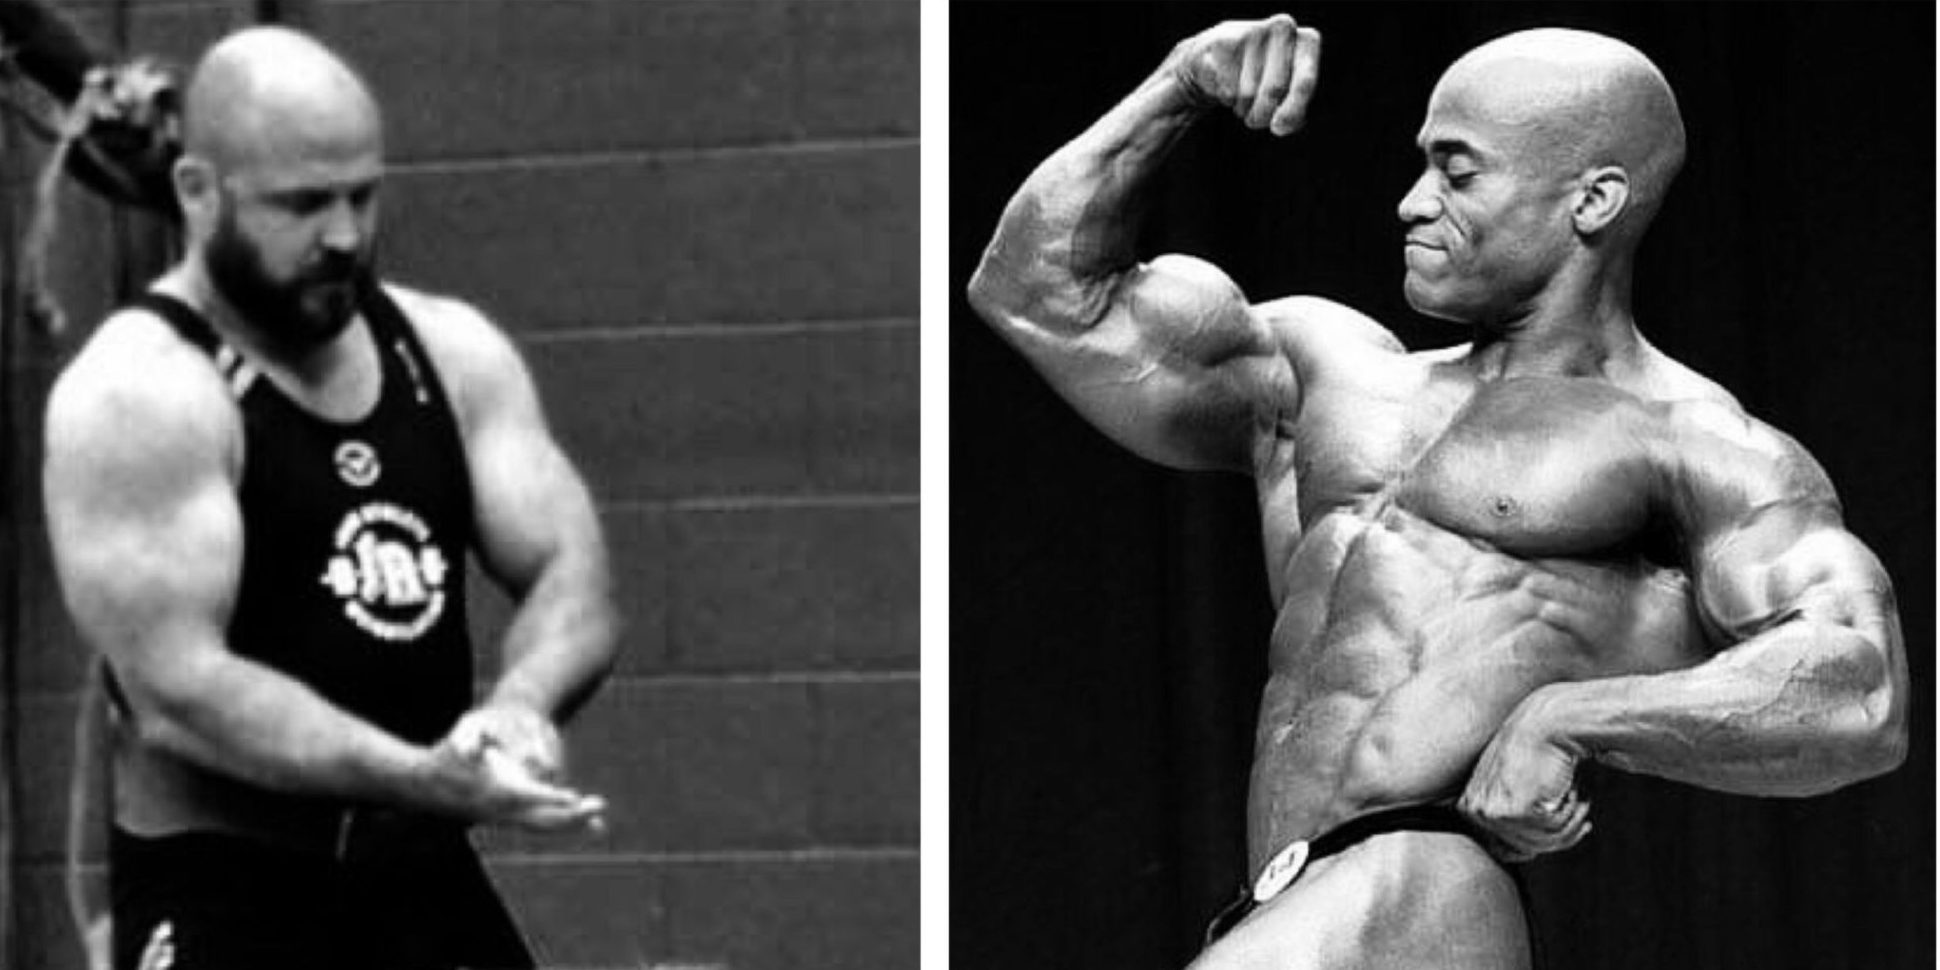 Iron Athlete Functional Bodybuilding Clinic By August Schmidt And James Allen